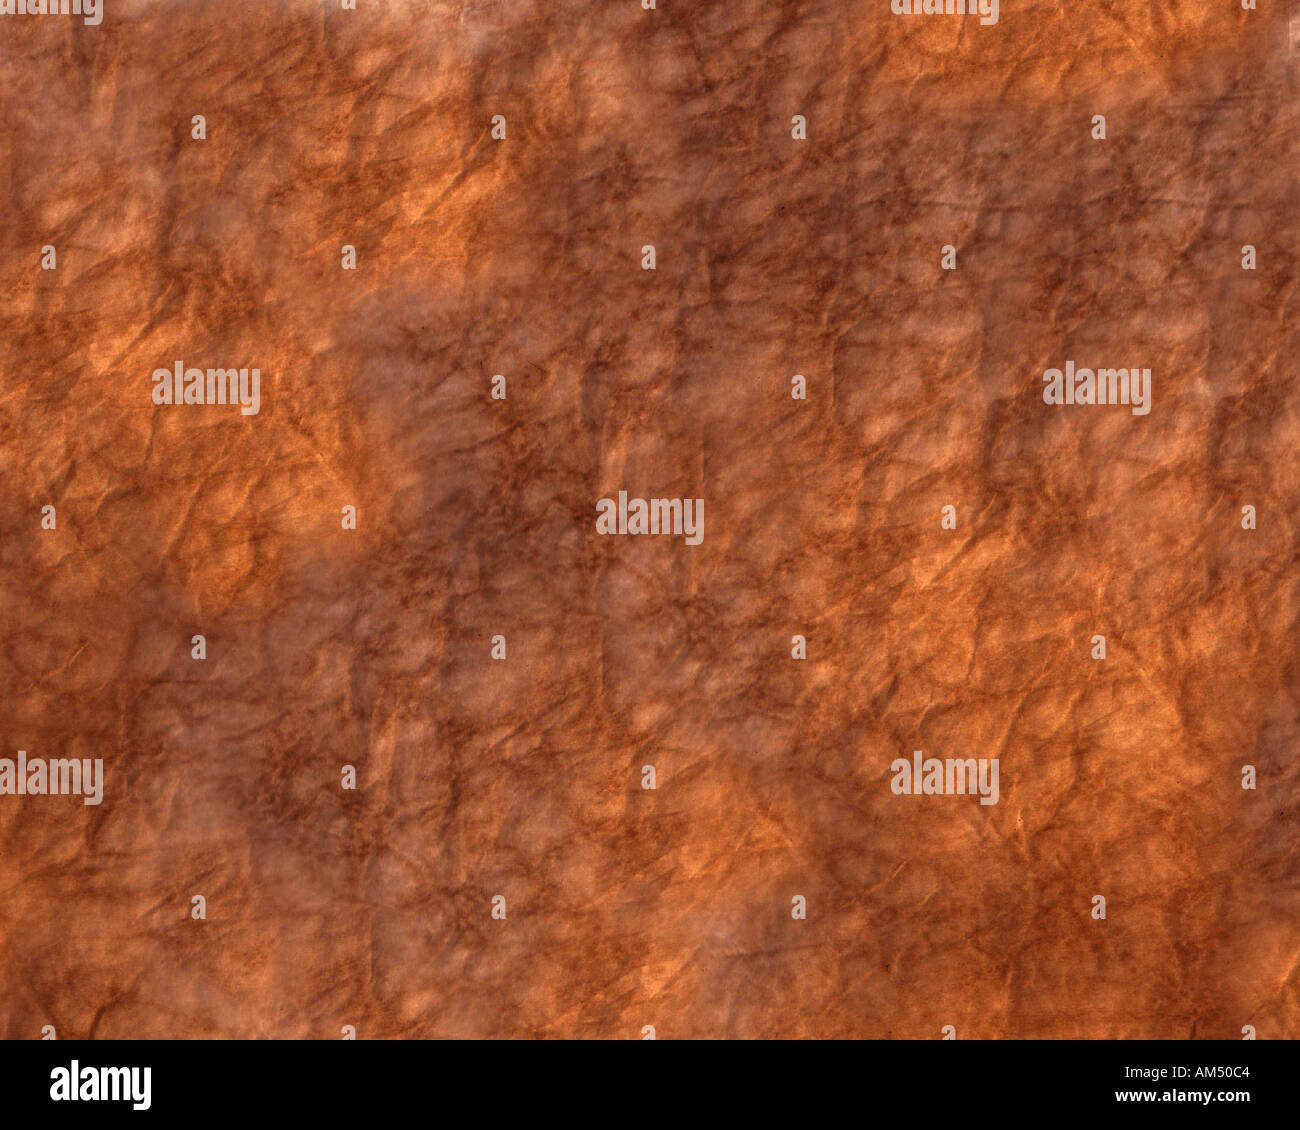 Parchment background - Stock Image